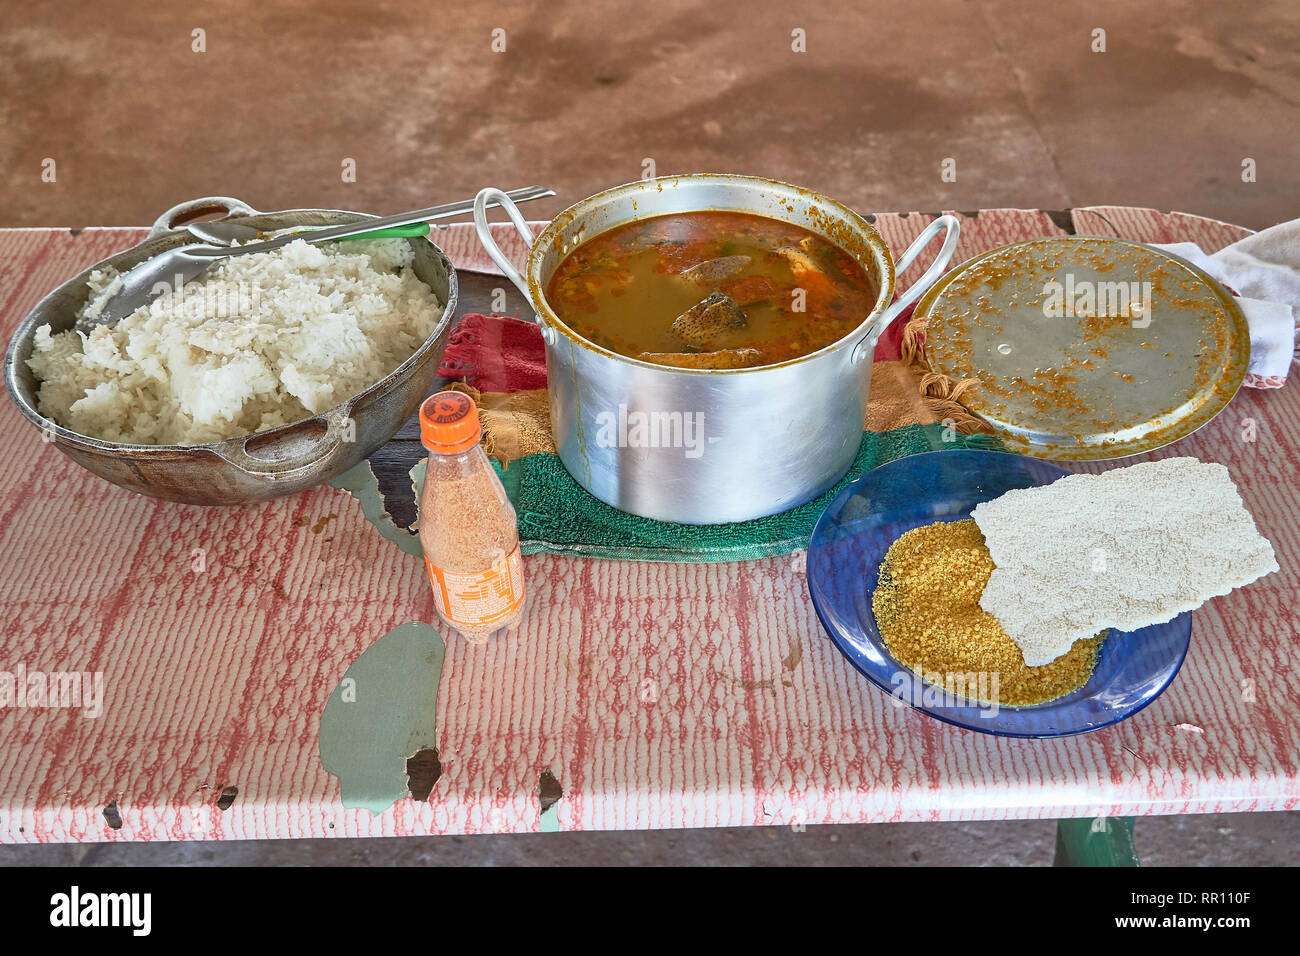 Amazon Indian style fish soup with traditional Cassave bread and flour - Stock Image